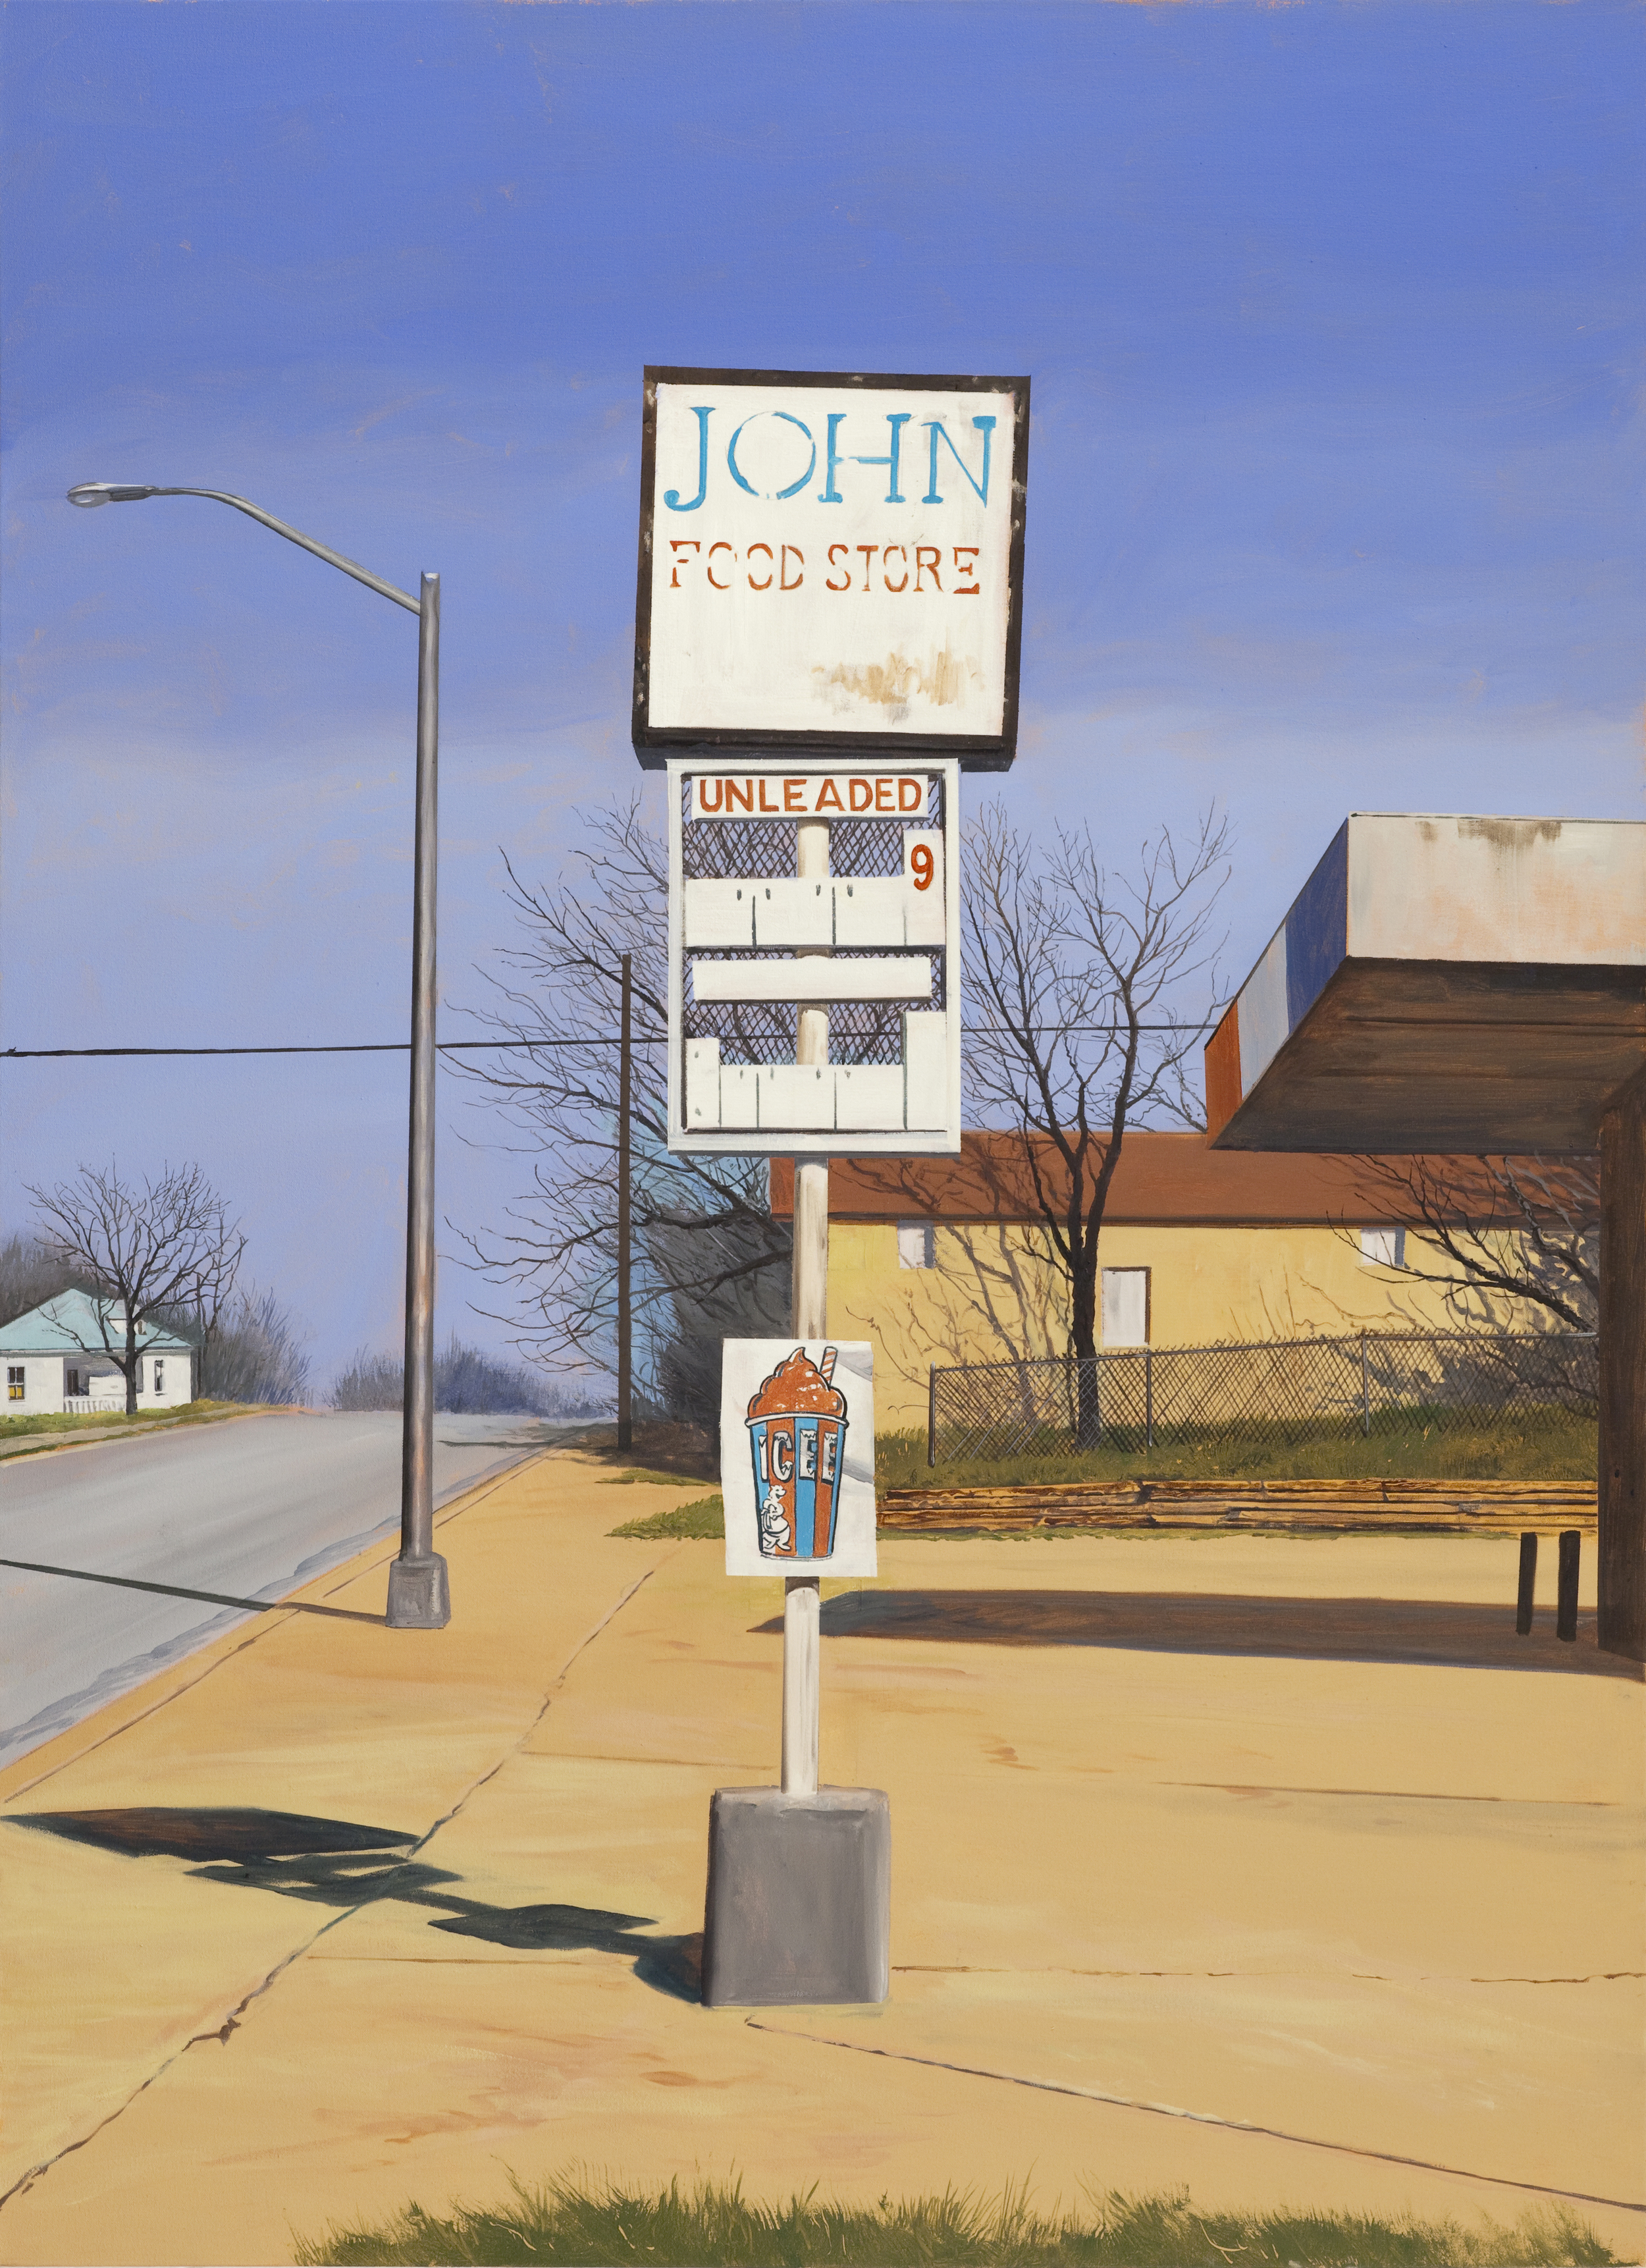 """Daniel Blagg, ICEE Time, oil on canvas, 52x 38"""". Contact Artspace111 to purchase."""